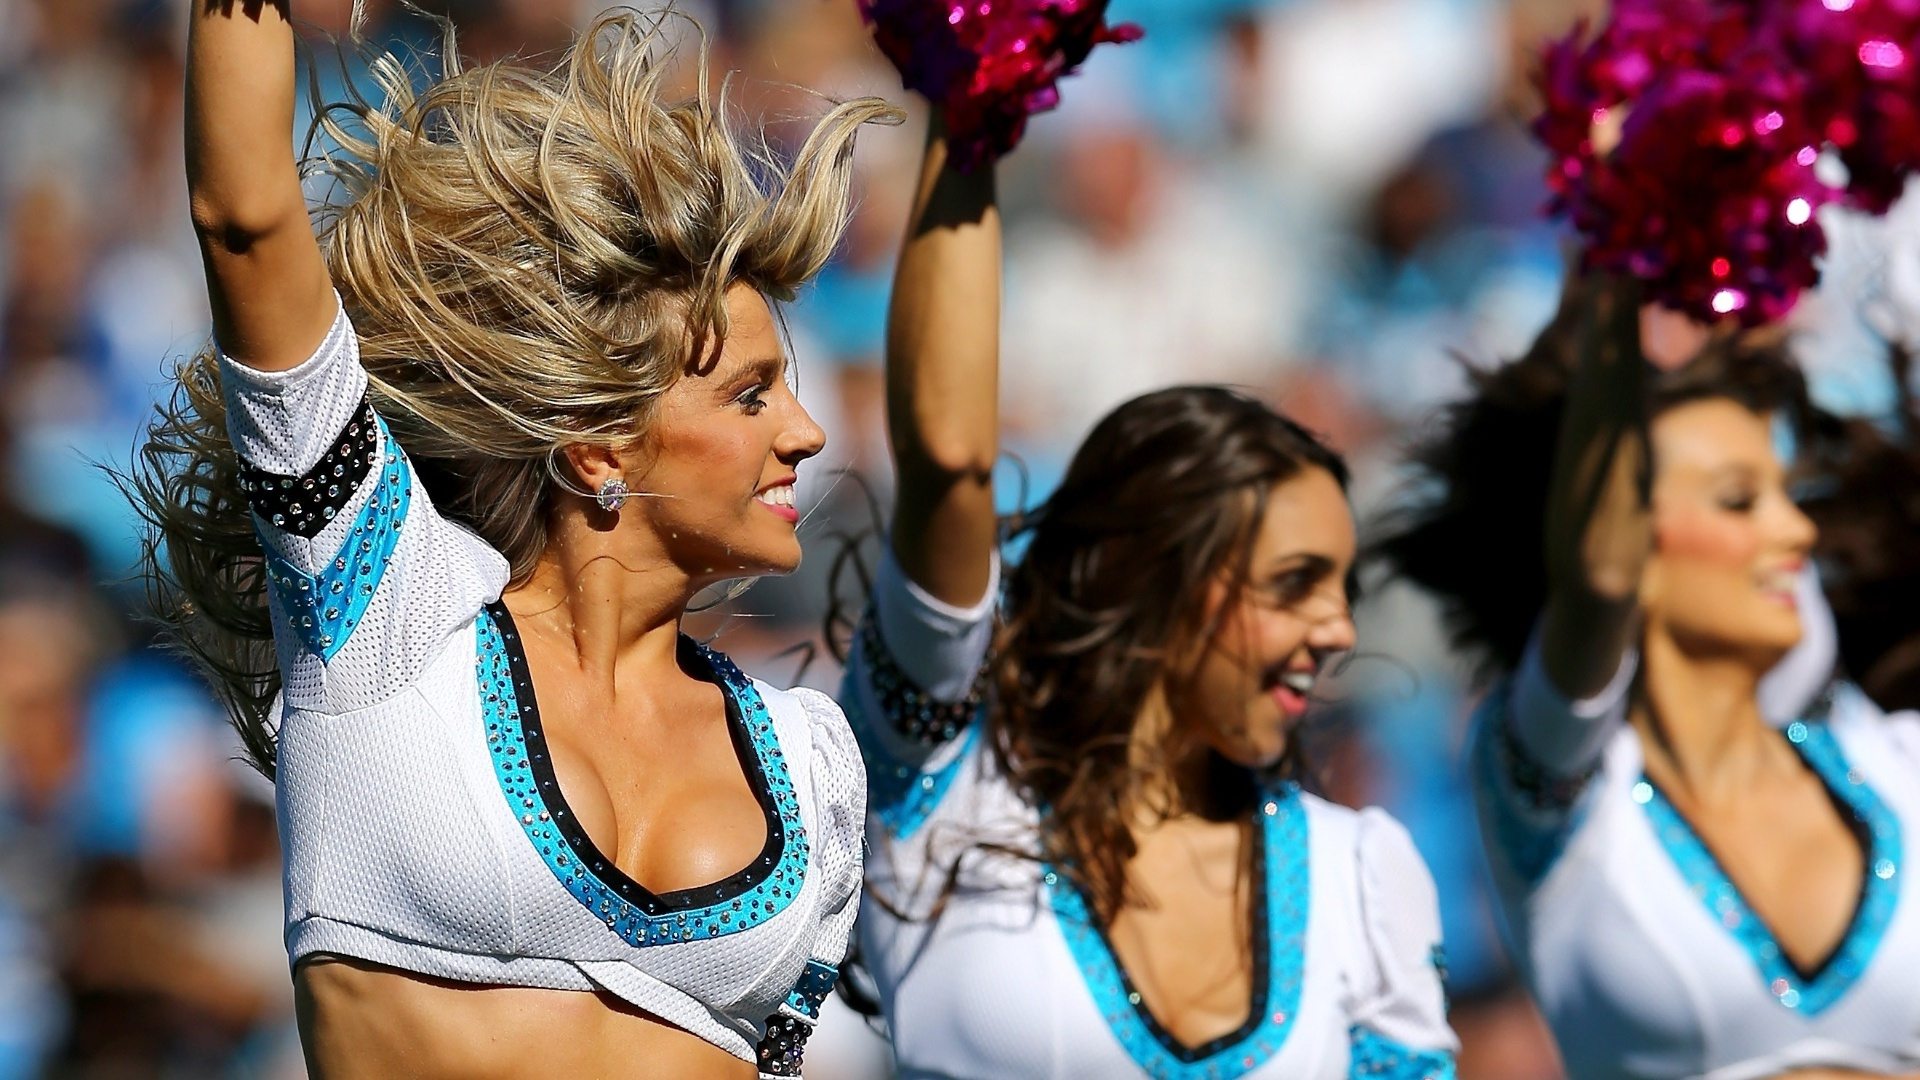 20.out.2013 - Cheerleaders do Carolina Panthers animam os torcedores antes da partida